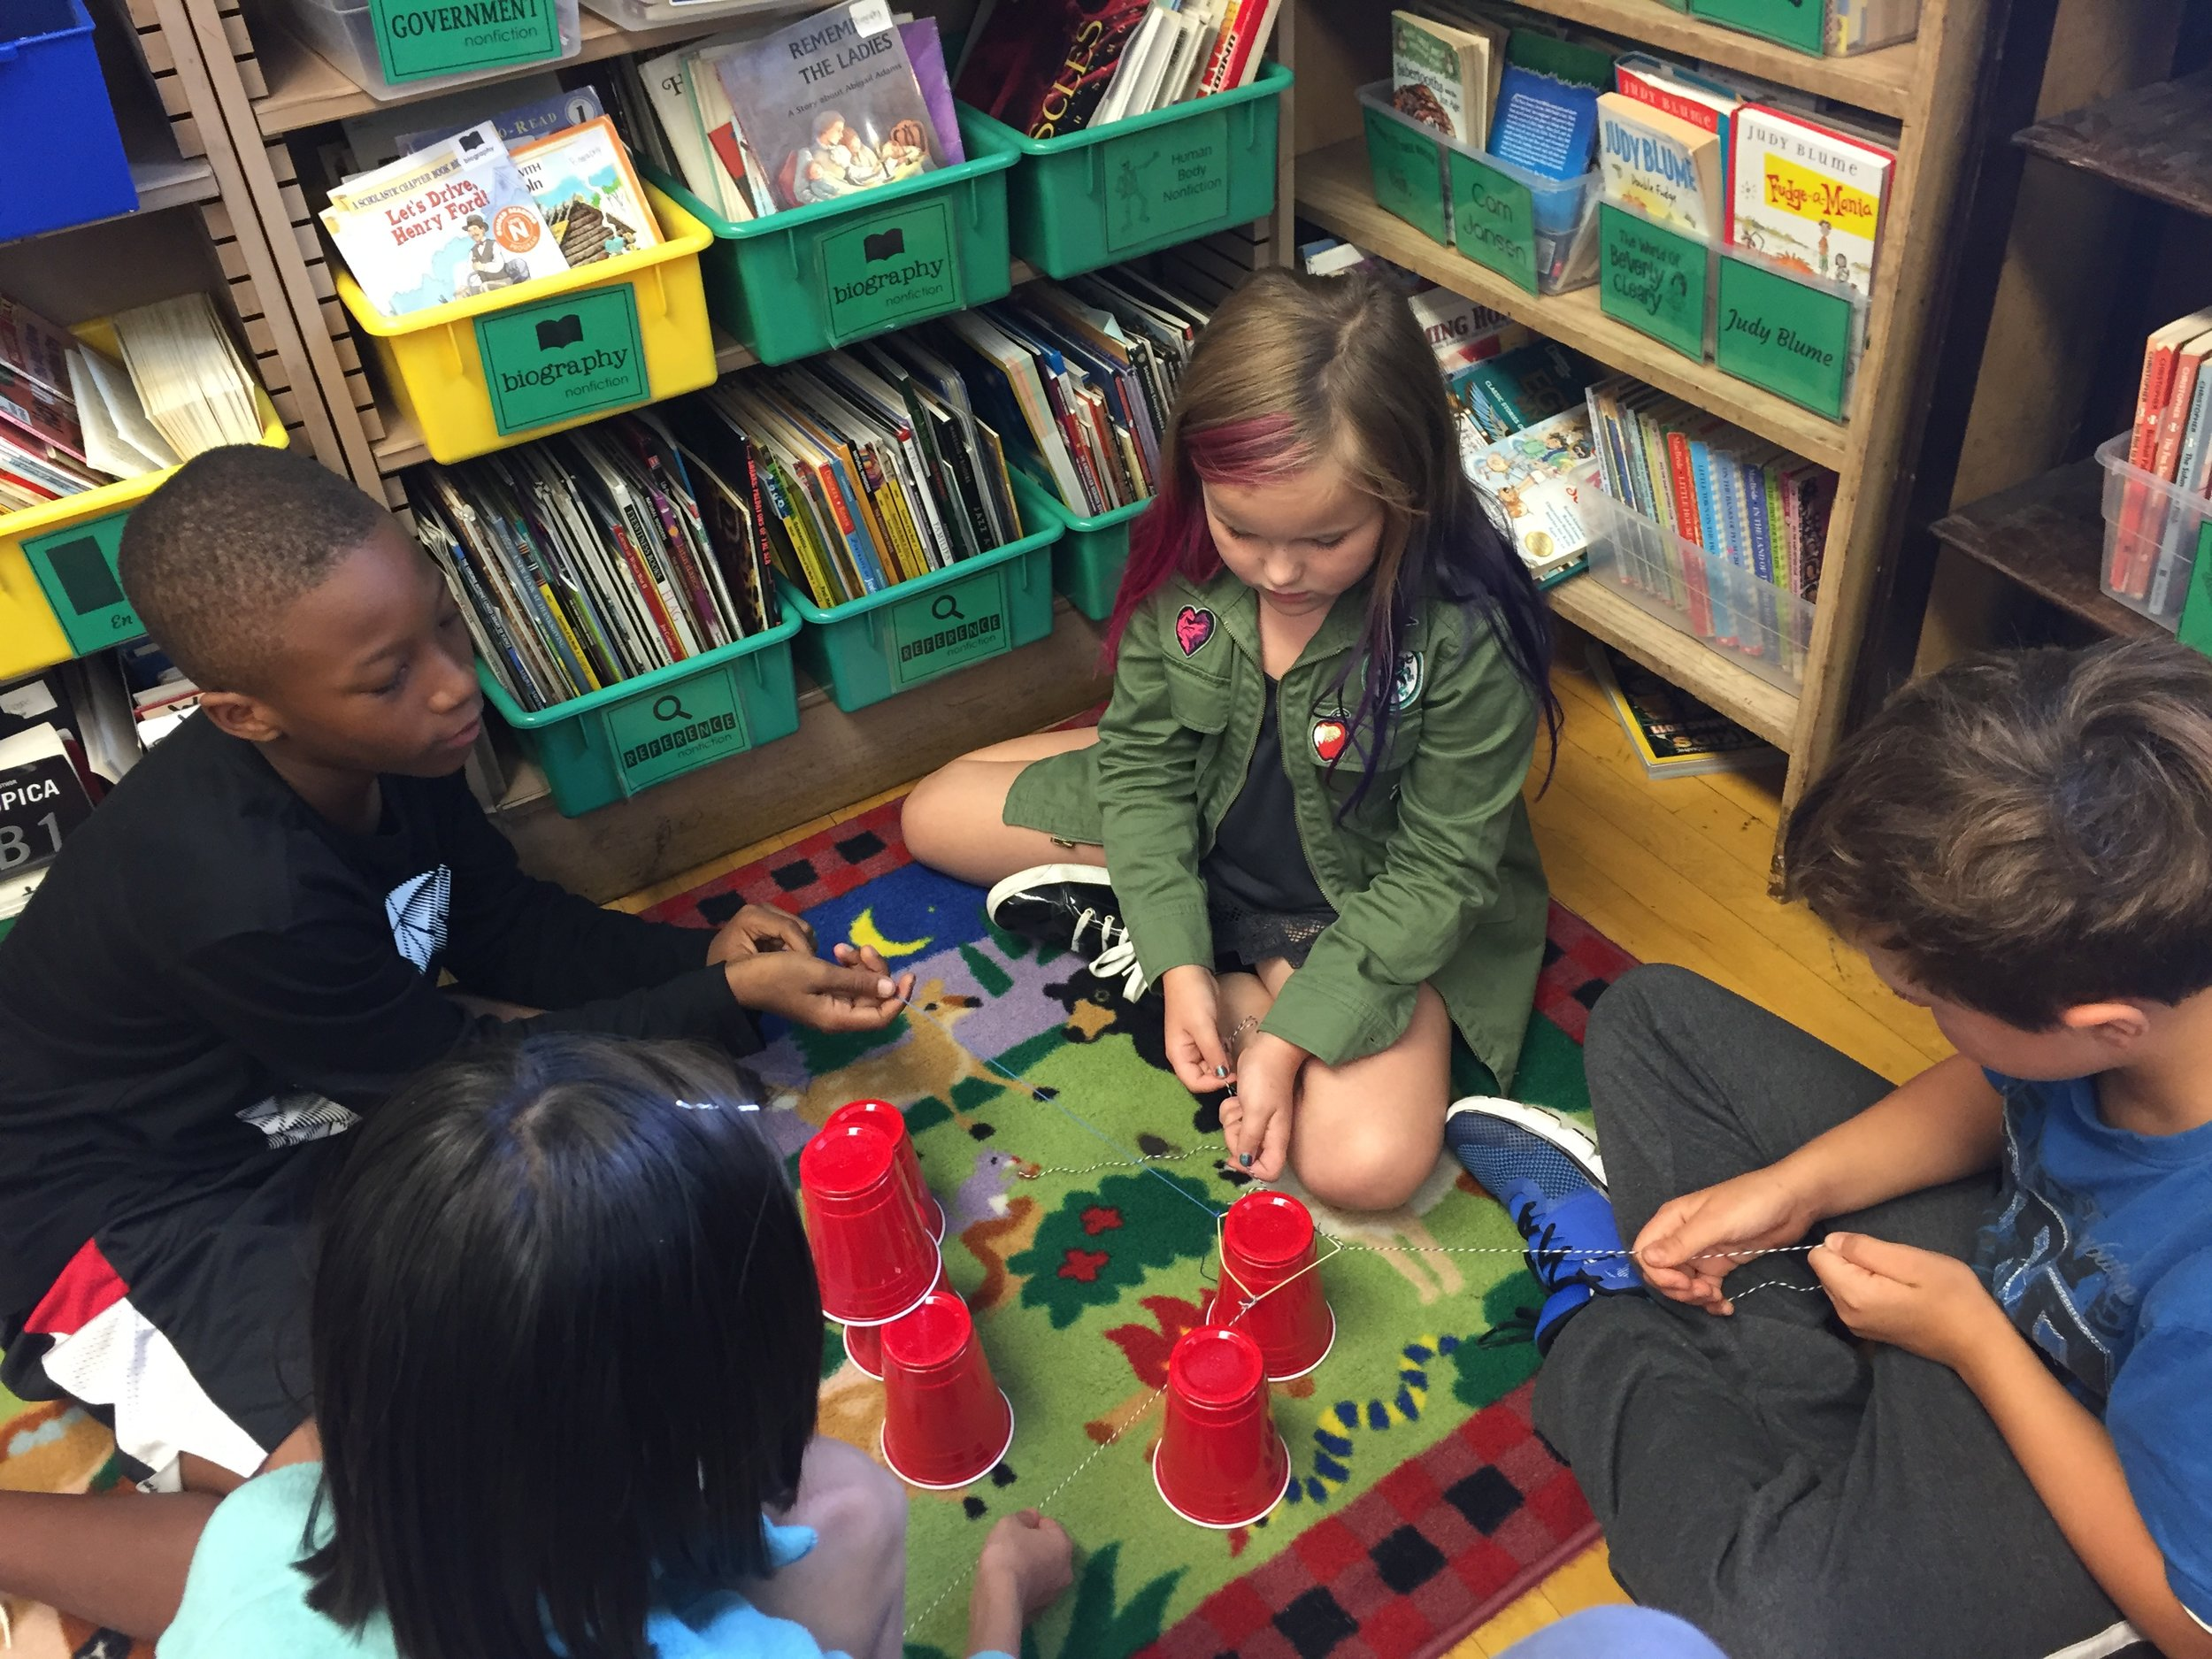 Students learn in a variety of ways. There are many outside resources that may be helpful!